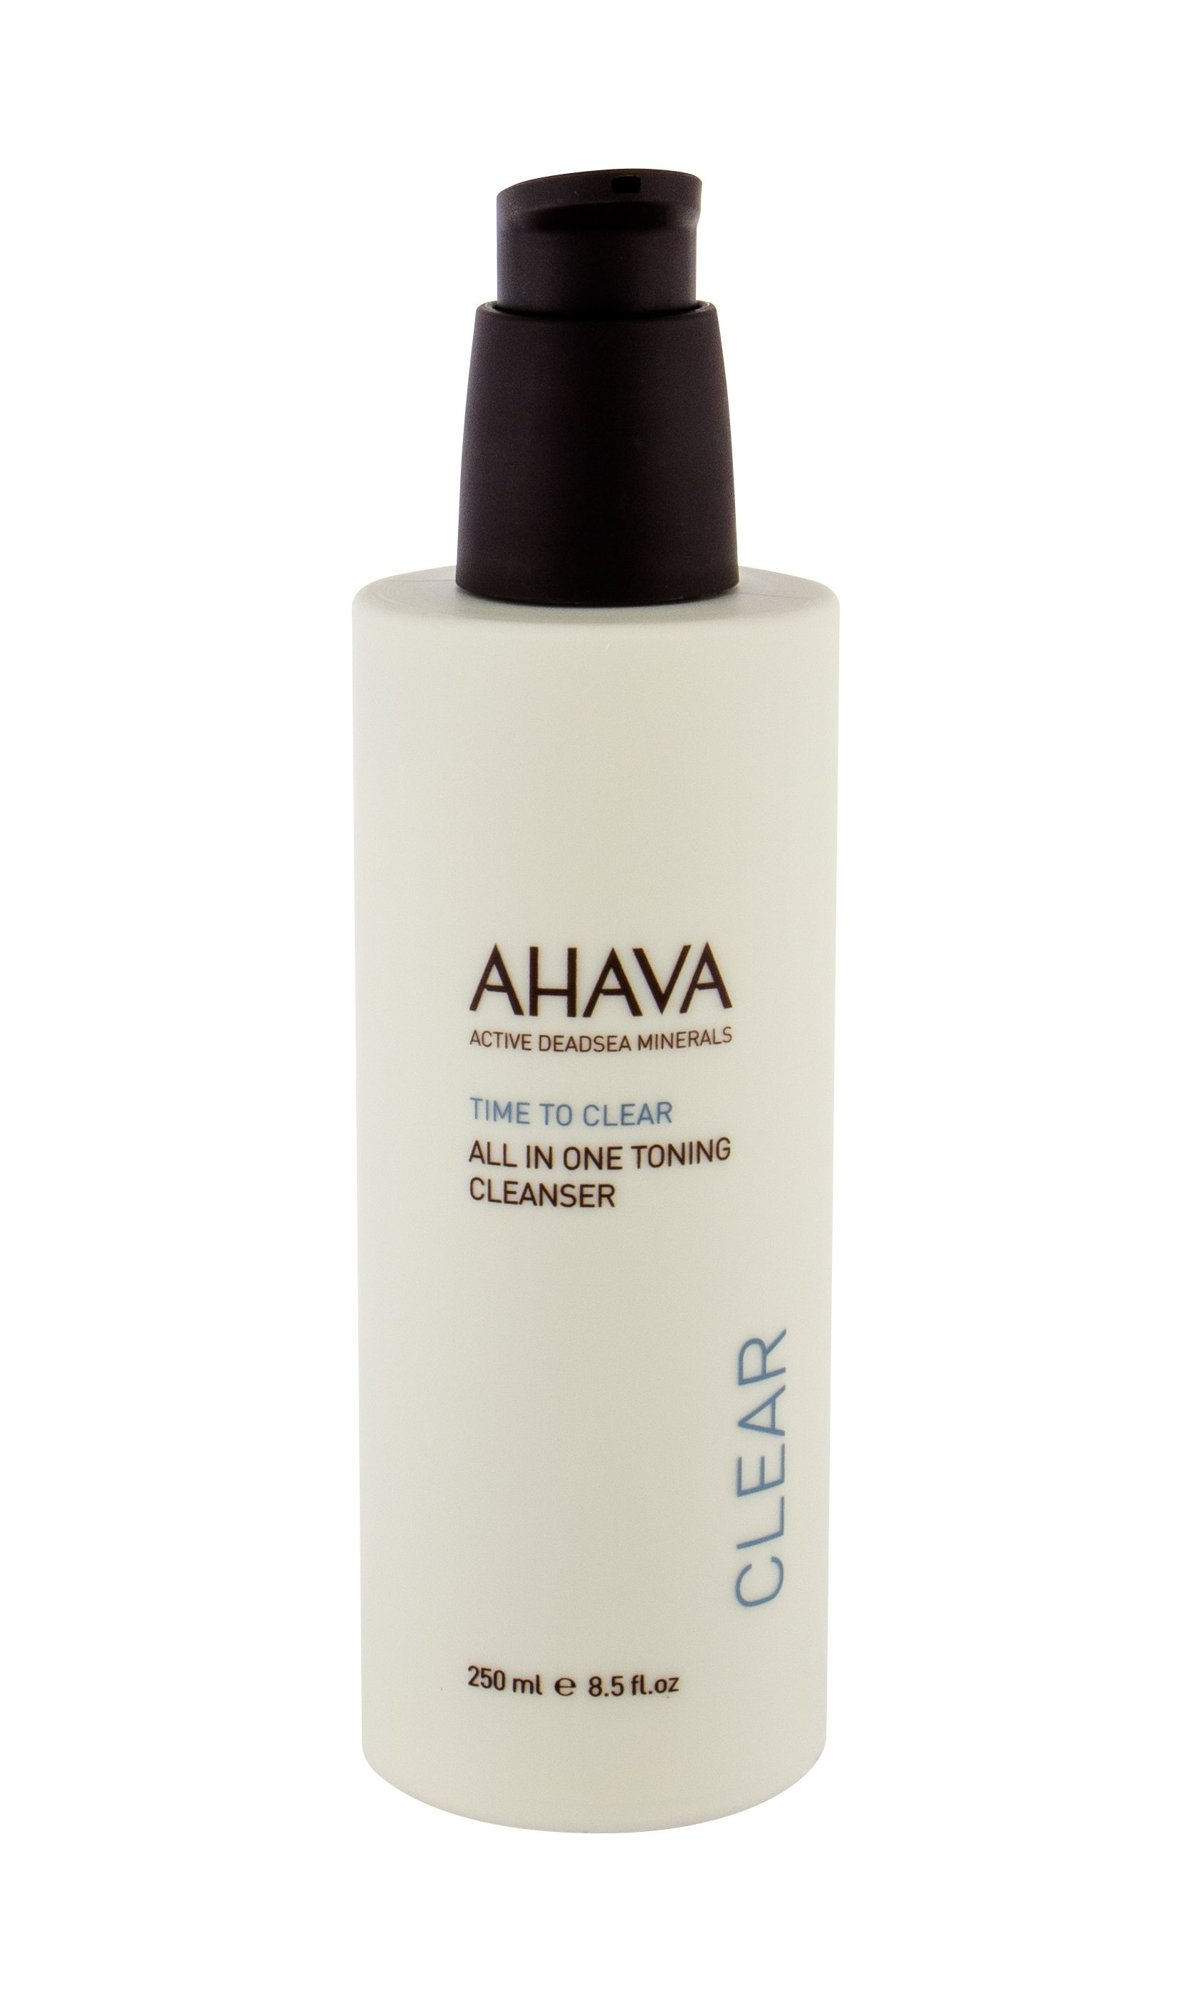 AHAVA Clear Cleansing Milk 250ml  Time To Clear